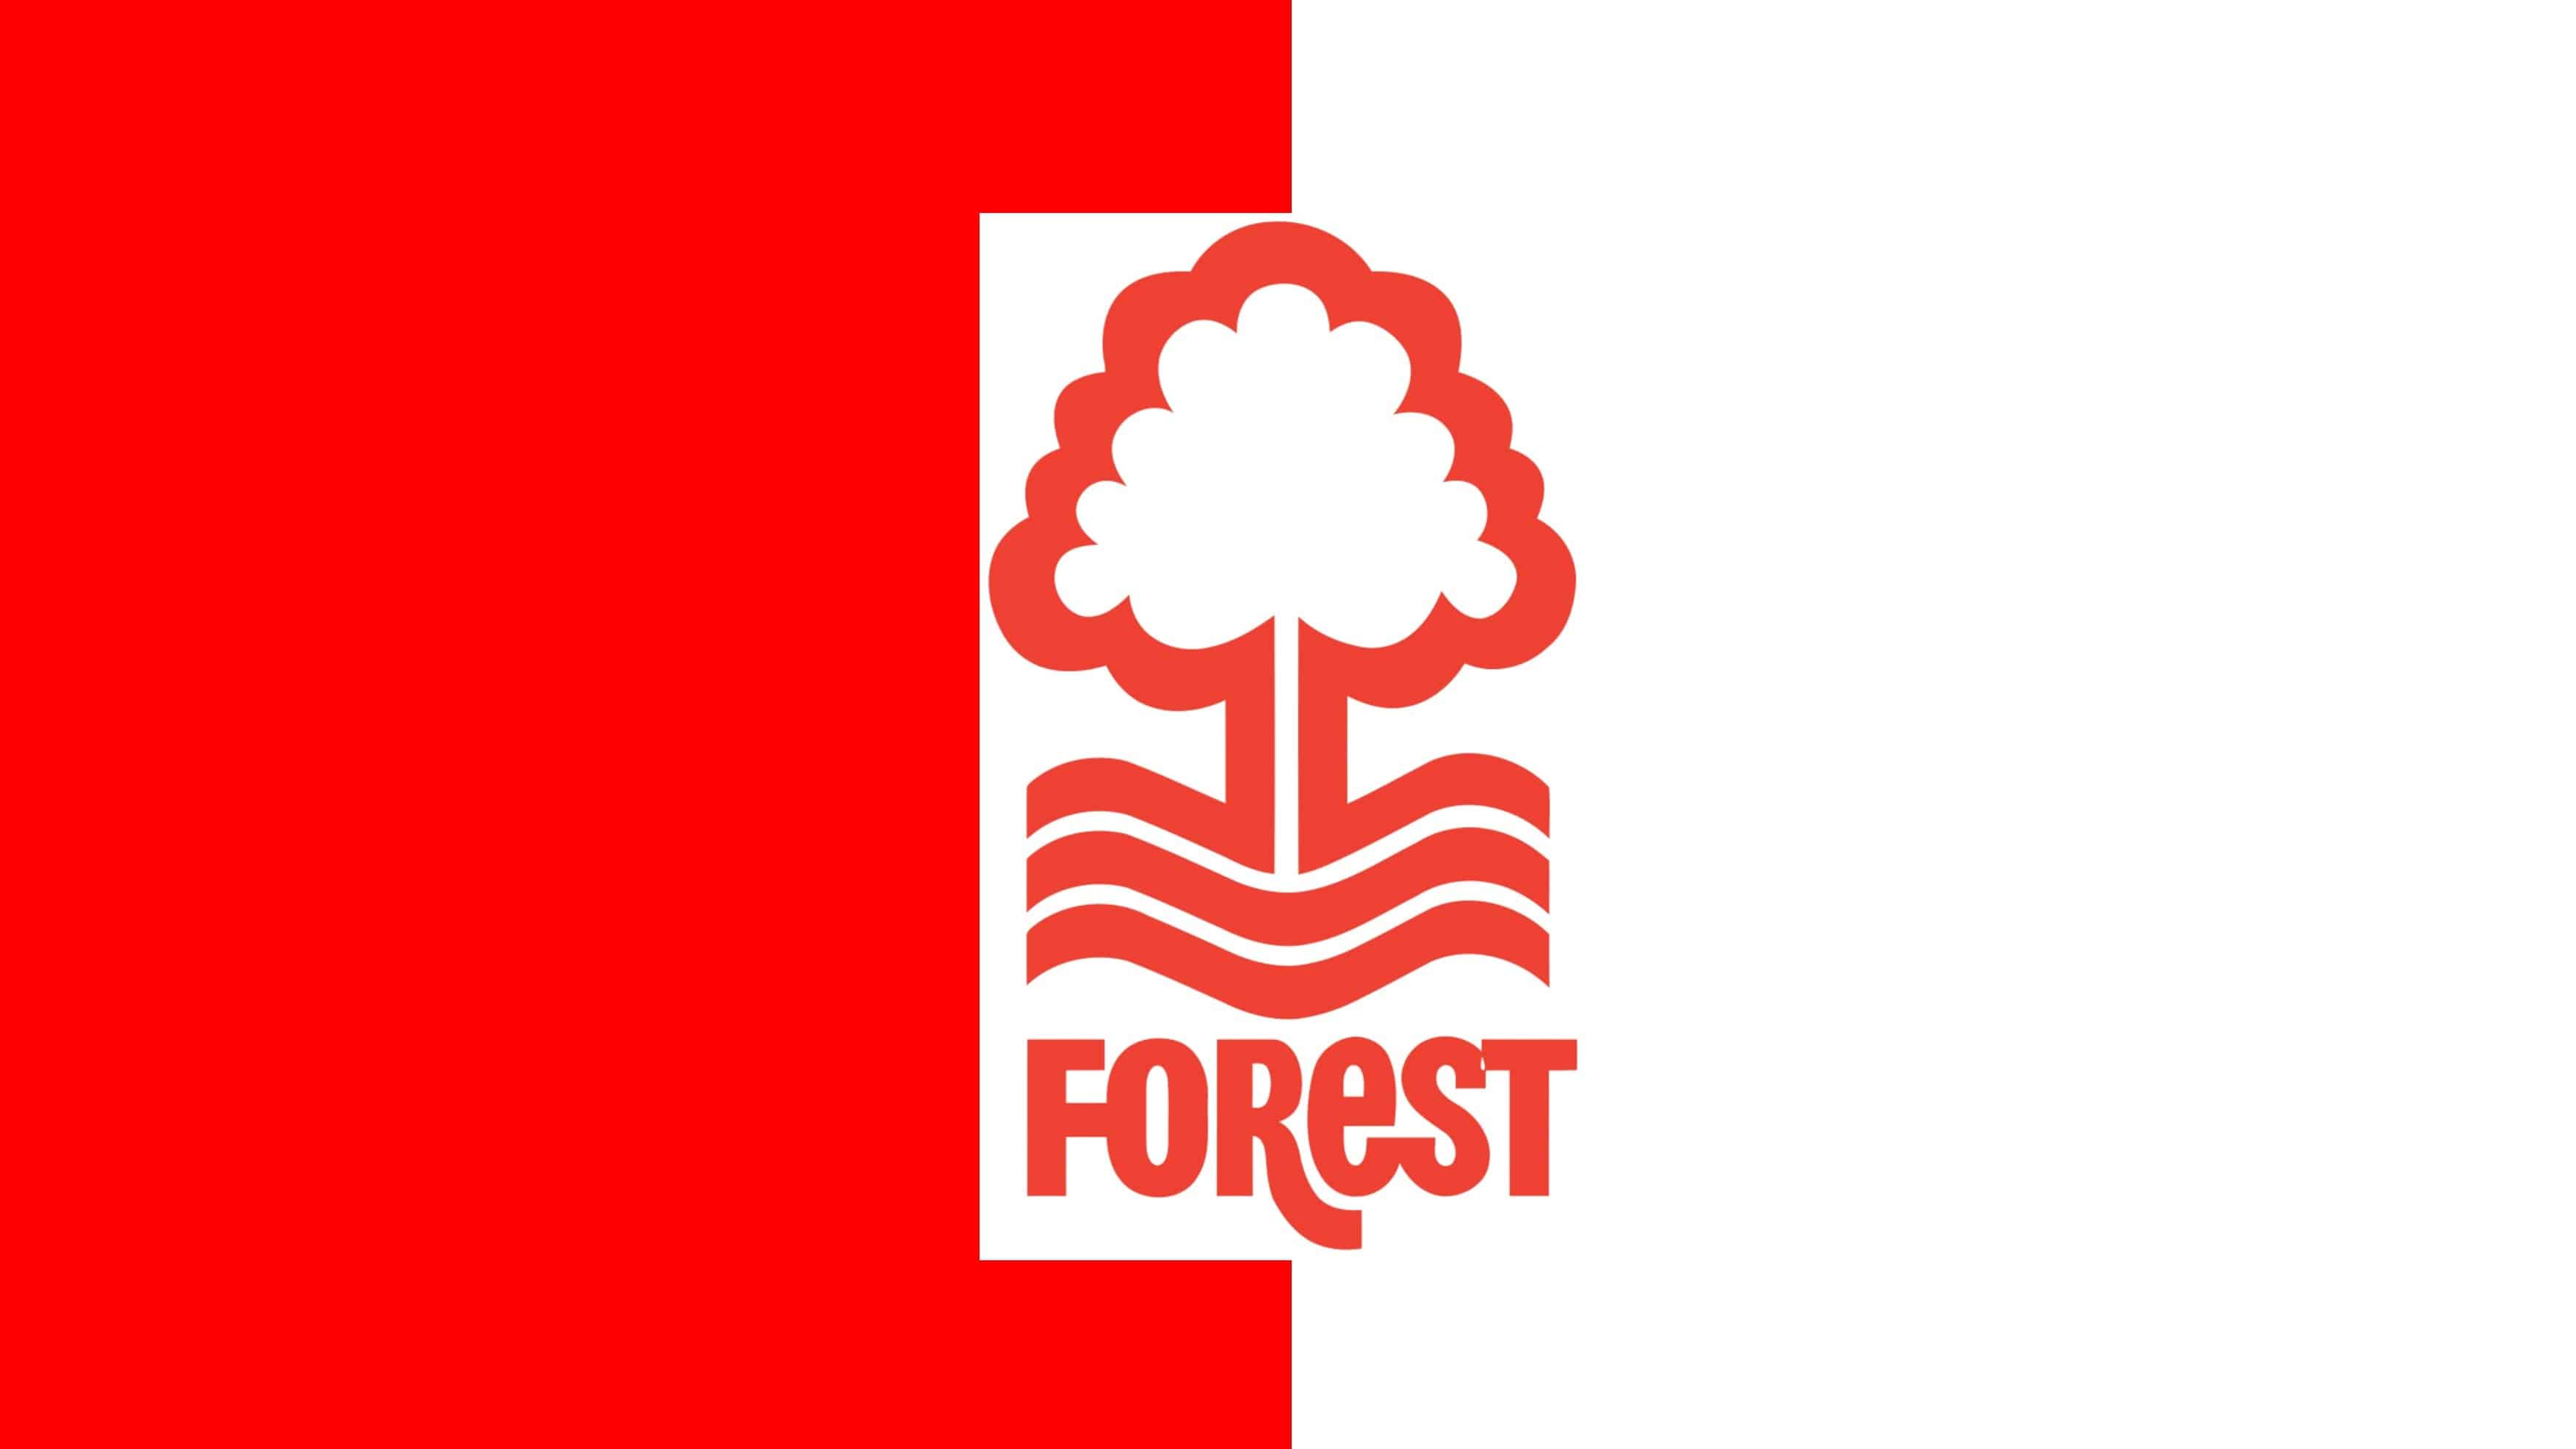 Shots or Dale Host Nottingham Forest In Third Round ...